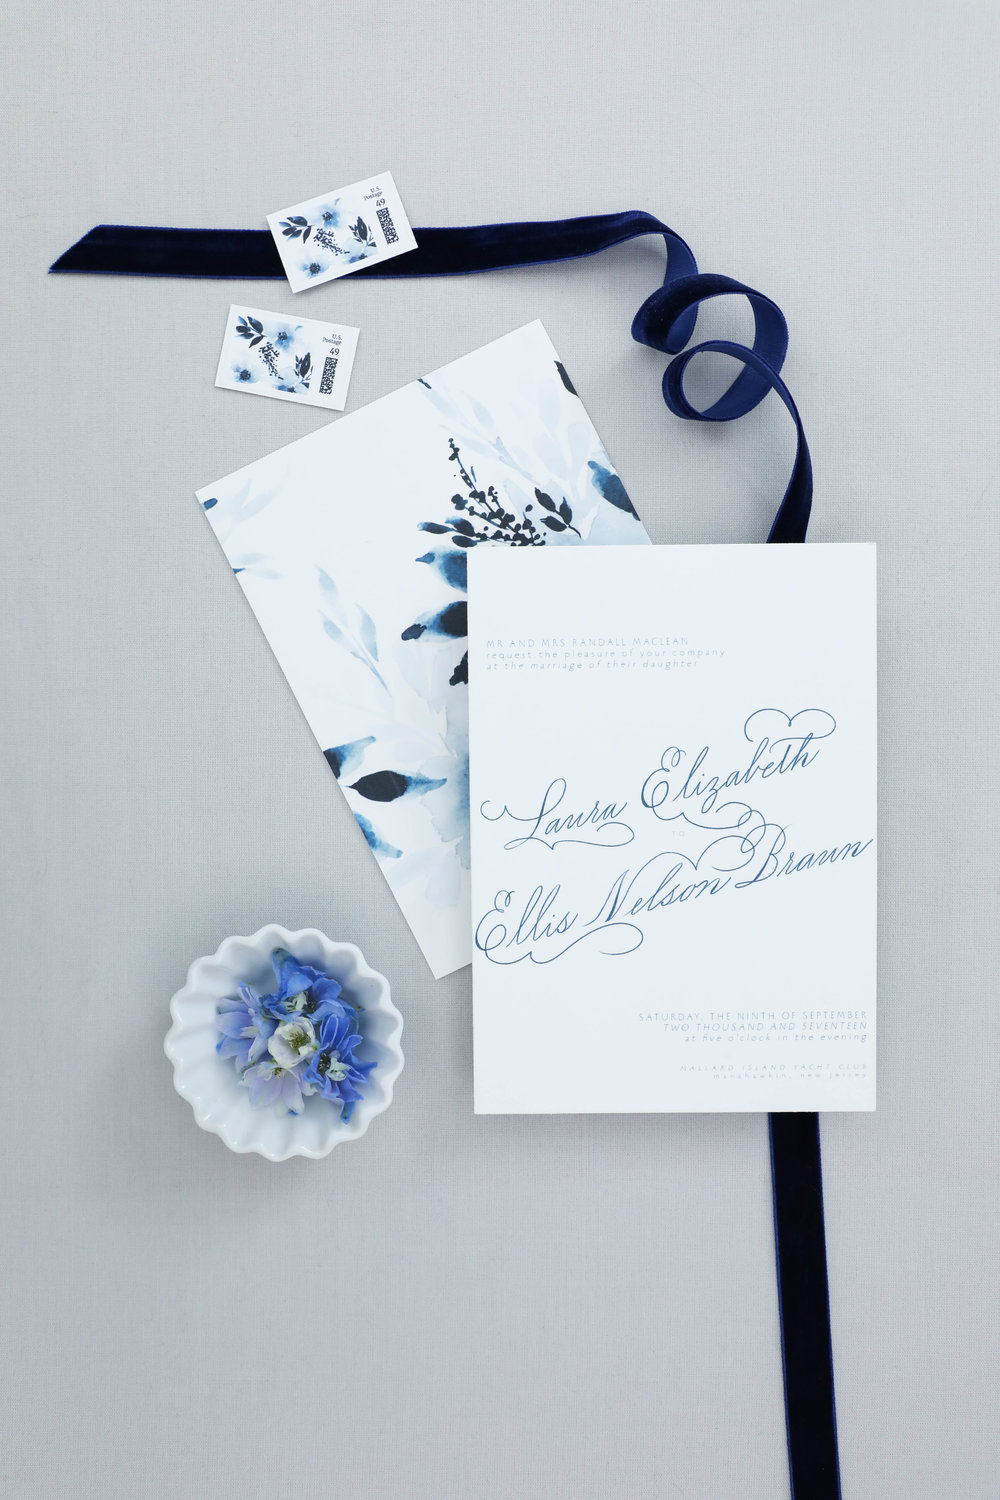 Laura & Ellis - shades of indigo, velvet, monochromatic, elegant, fall wedding